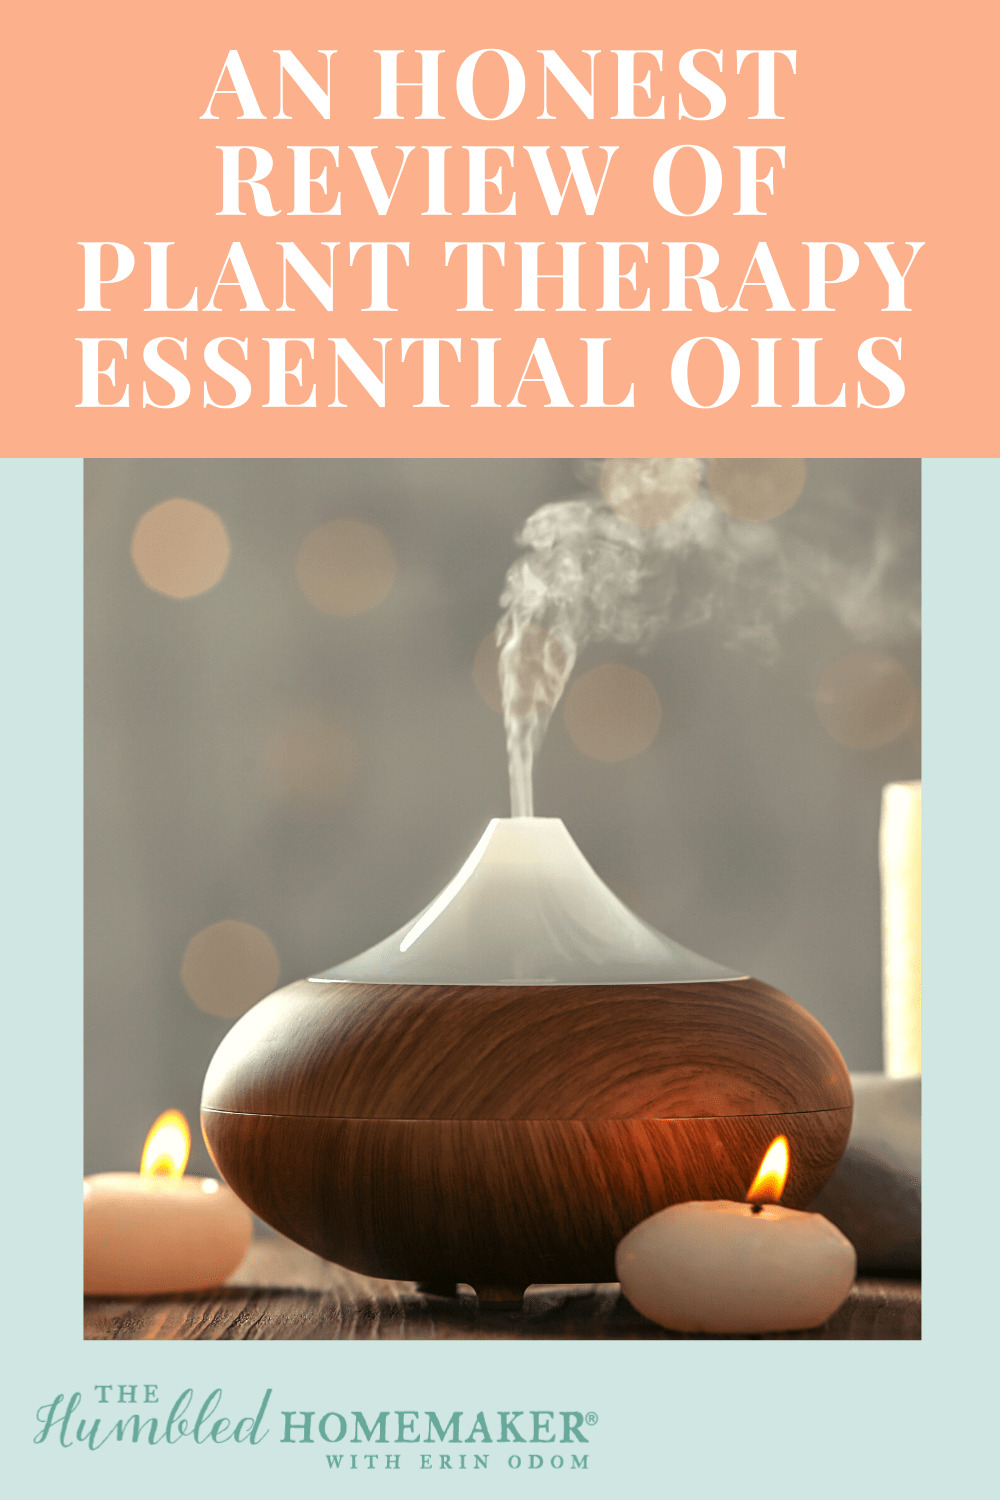 Our family uses essential oils in our home every single day, and Plant Therapy is one of our favorite brands to use. They are high-qualityandaffordable, which makes them perfect for the grace-filled, natural homemaker!